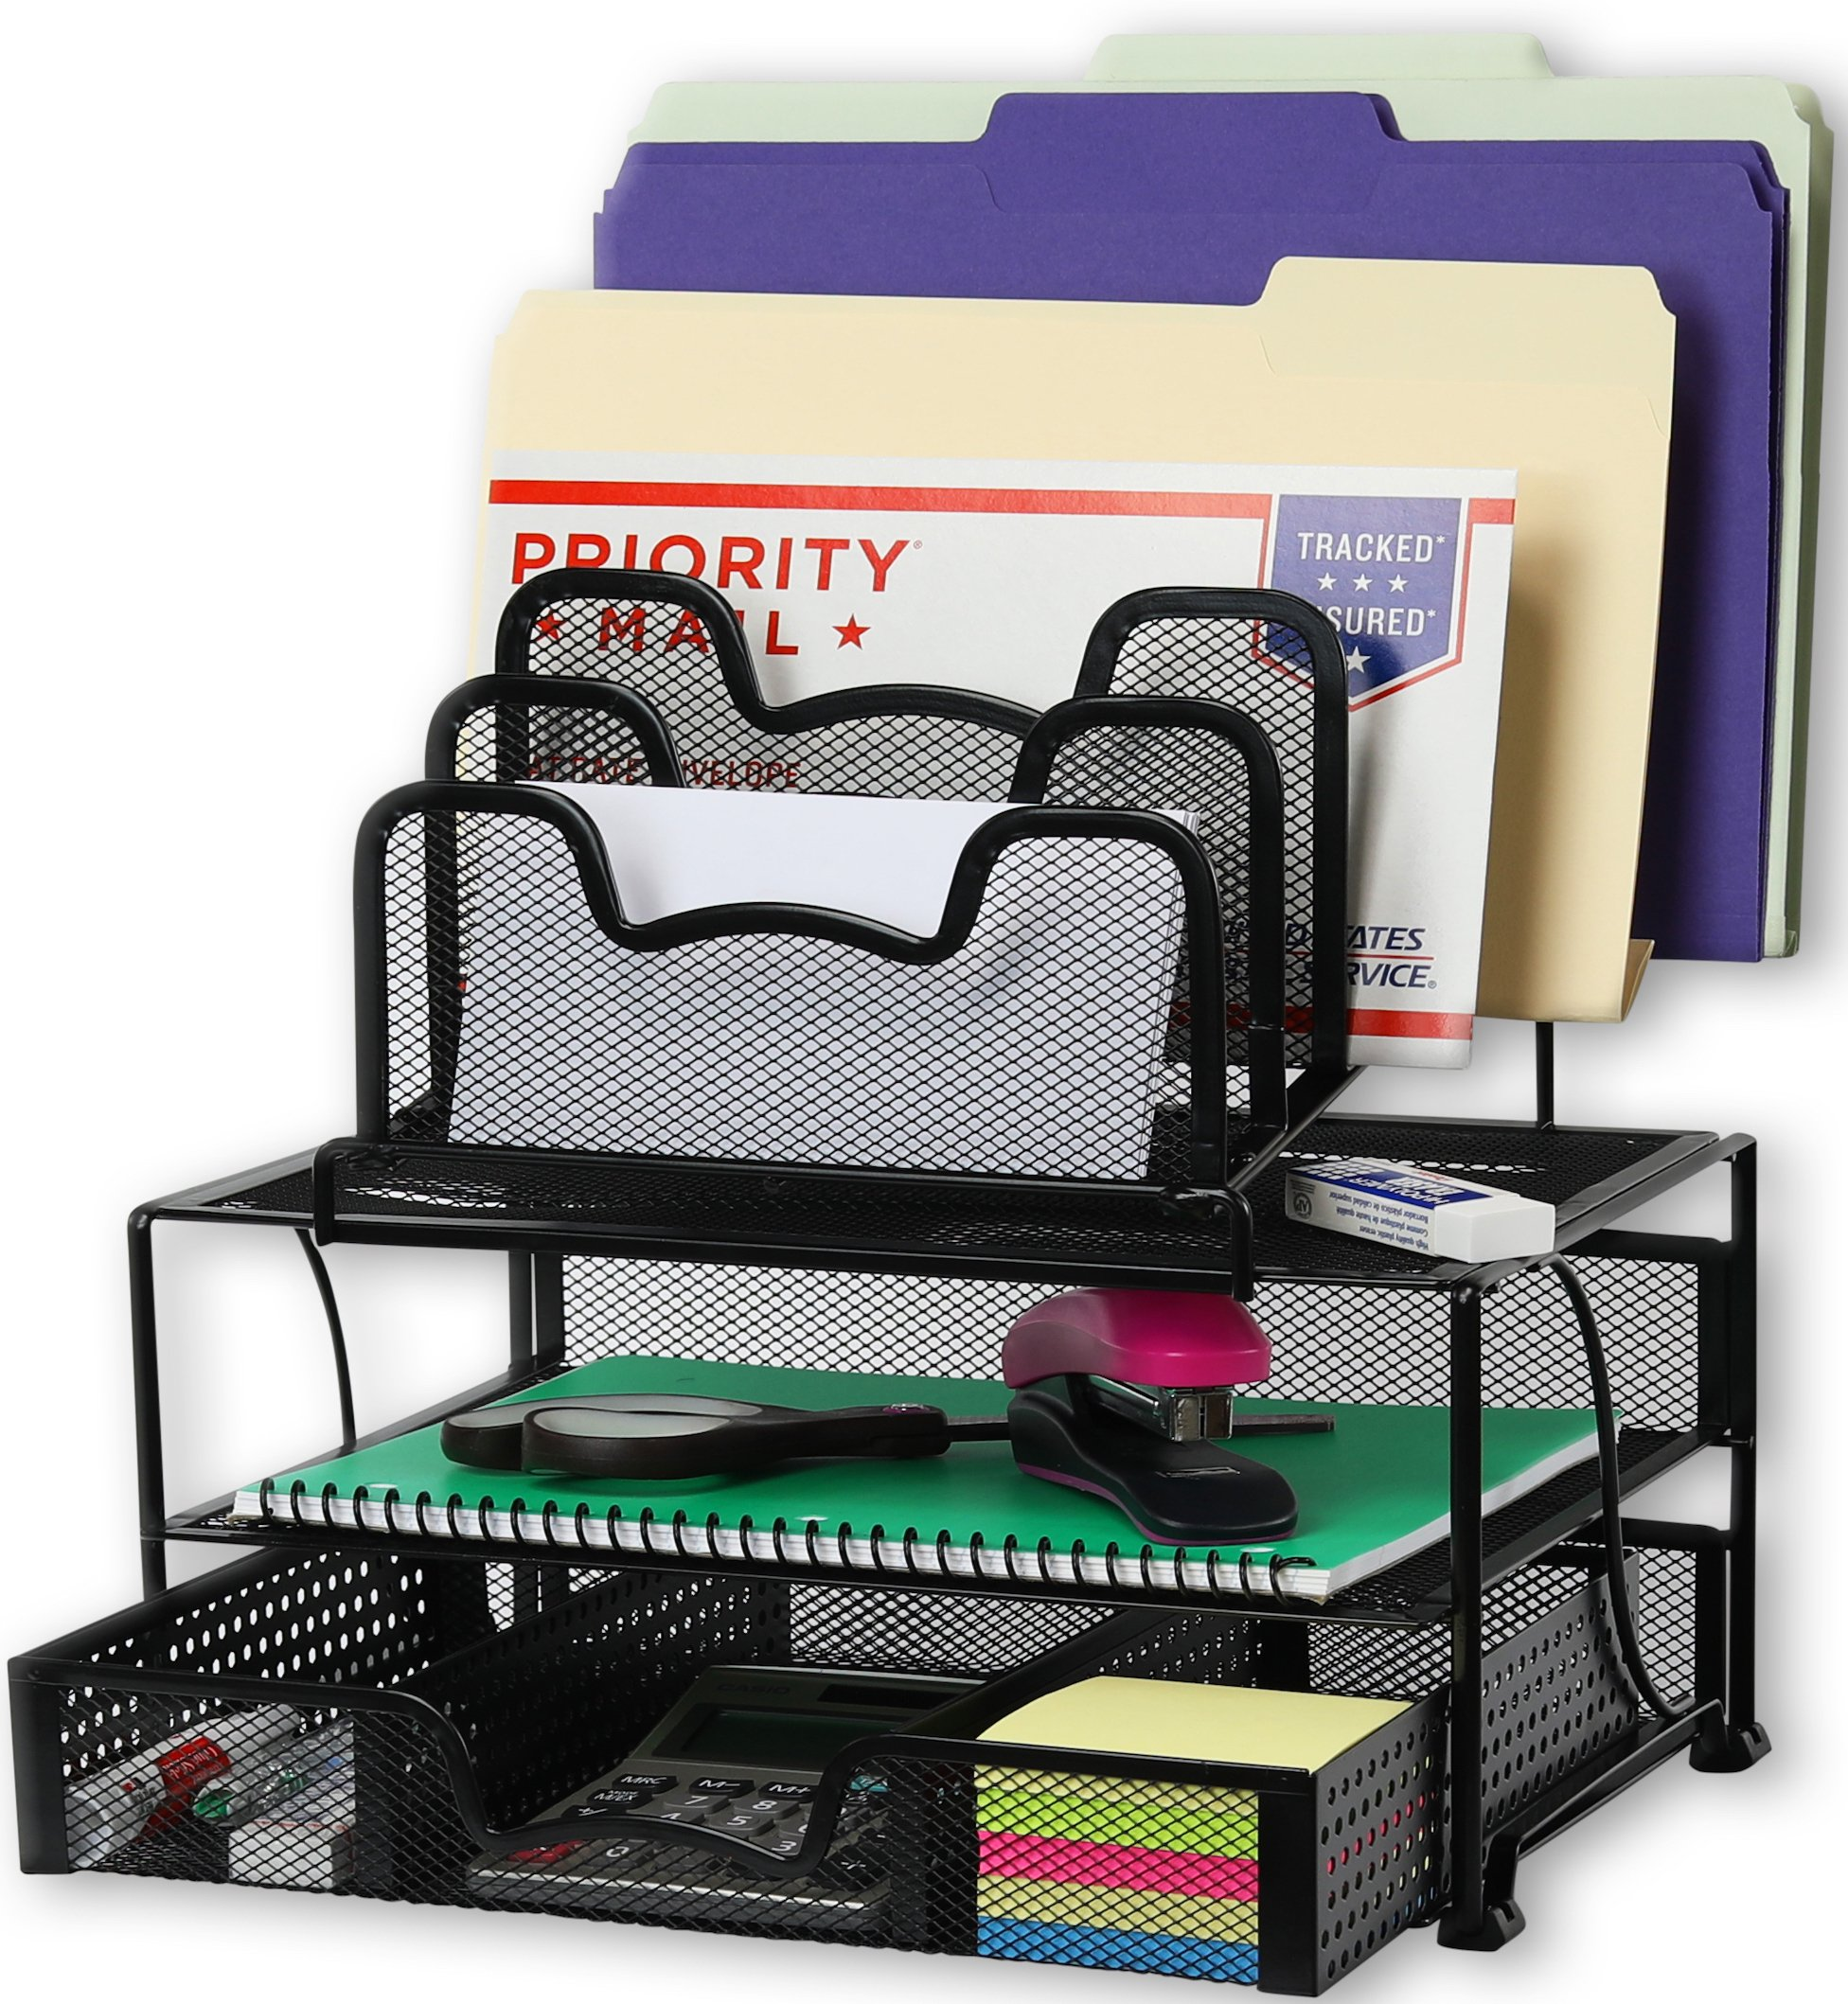 SimpleHouseware Mesh Desk Organizer with Sliding Drawer, Double Tray and 5 Stacking Sorter Sections, Black by Simple Houseware